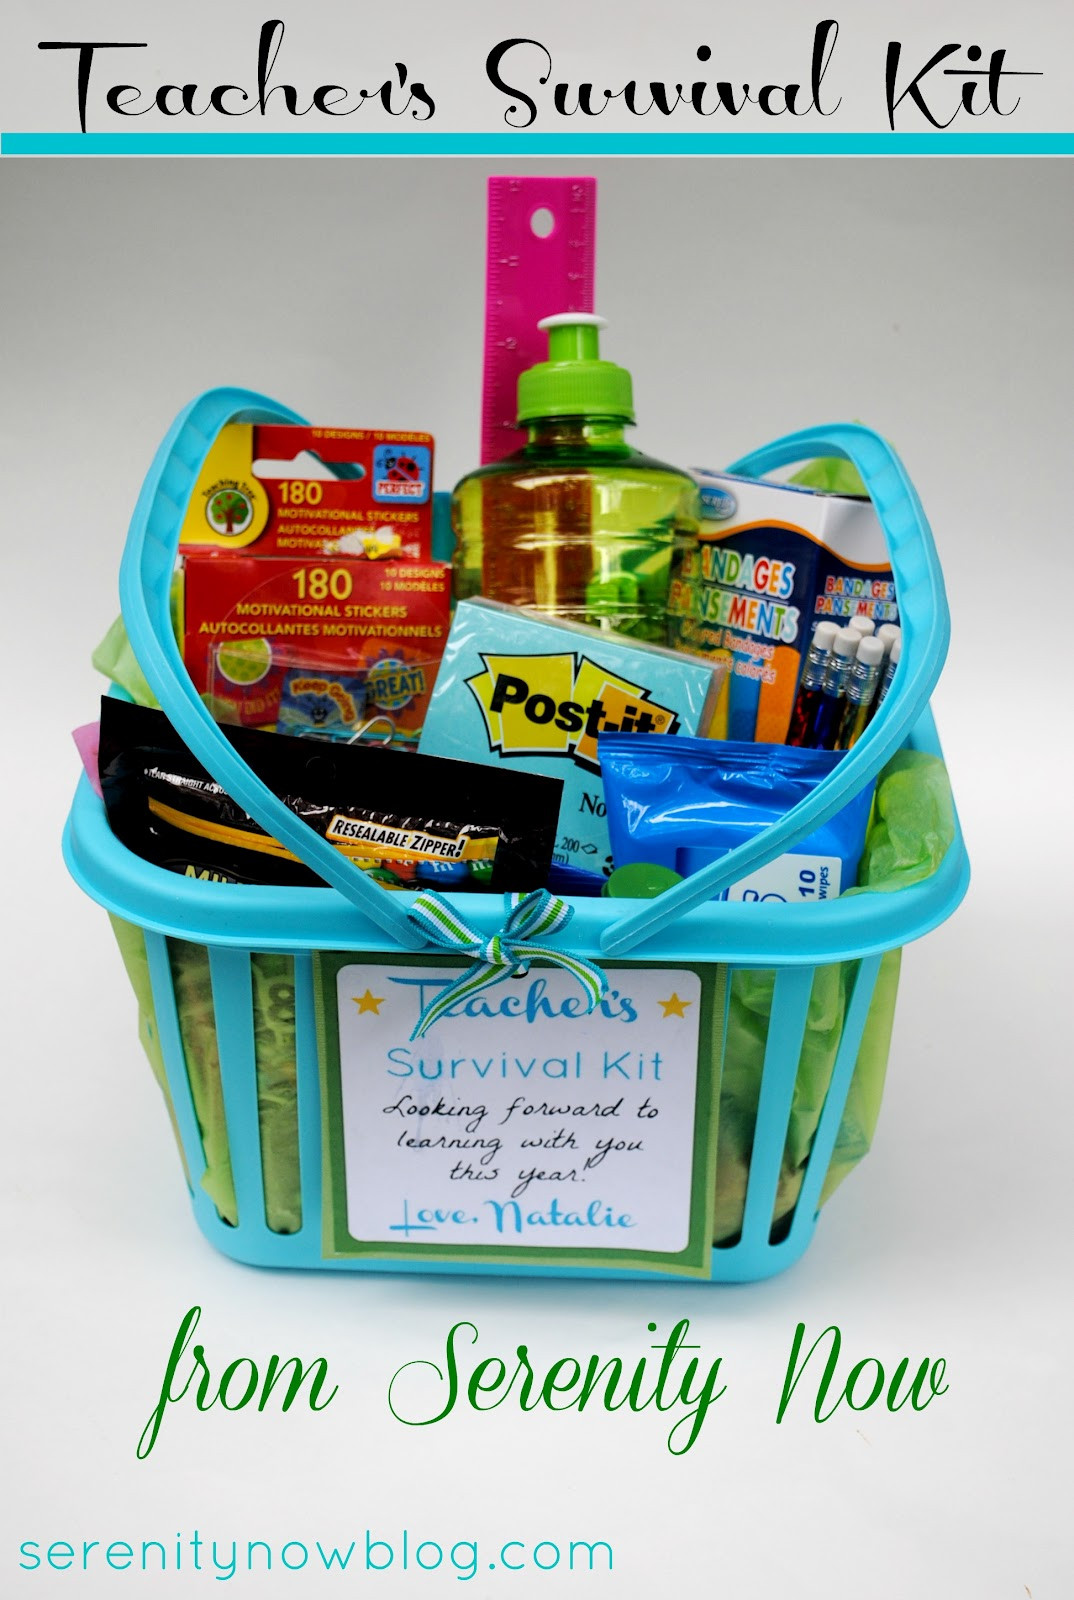 Best ideas about Teacher Appreciation Gift Ideas . Save or Pin Craftaholics Anonymous Now.